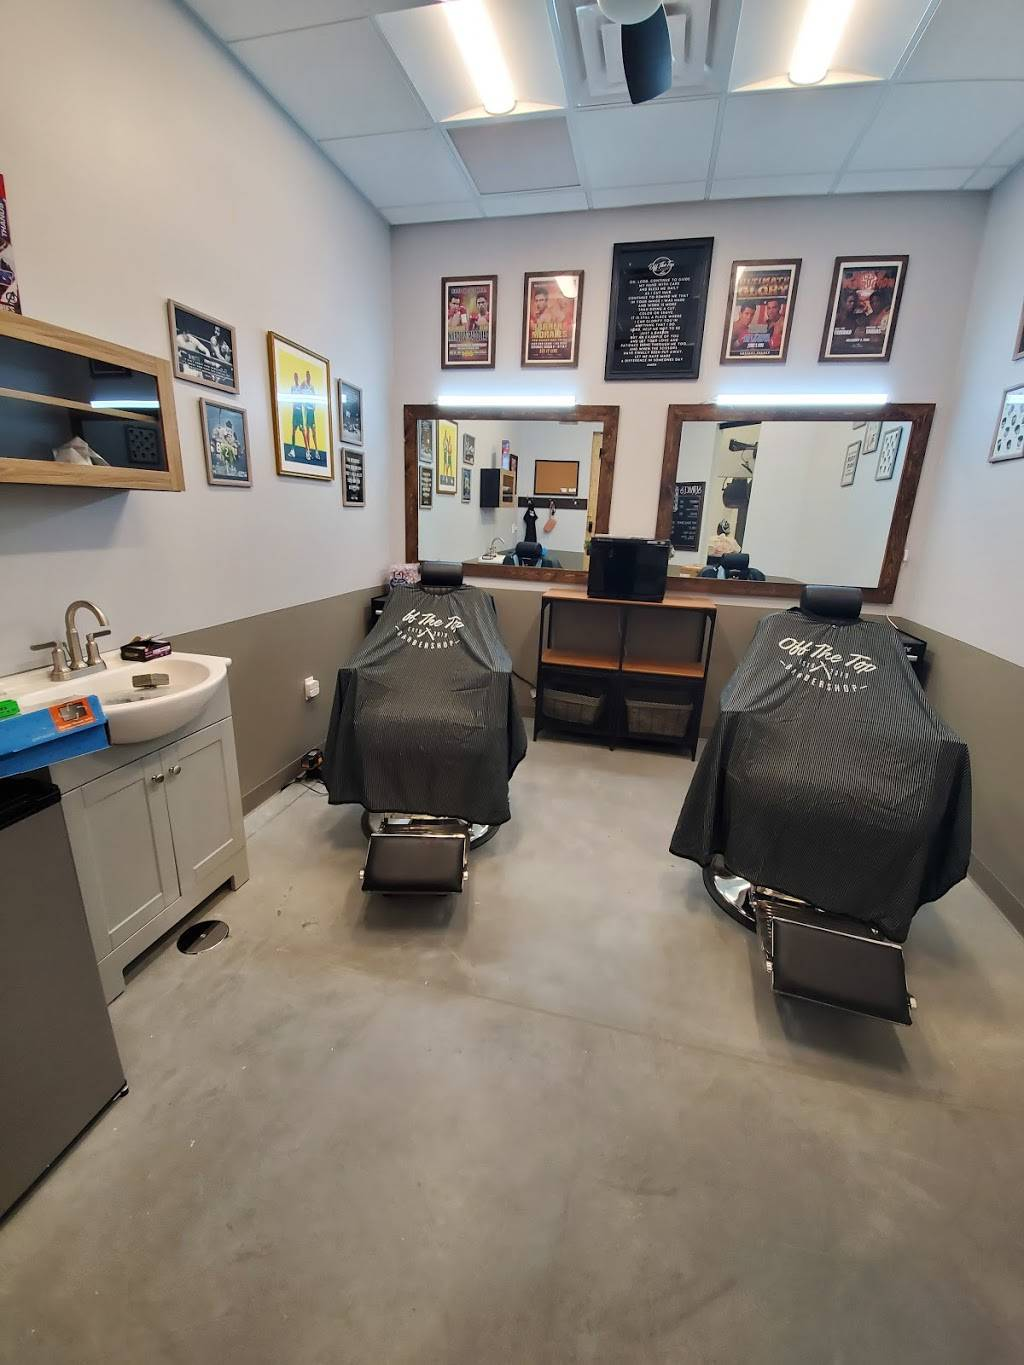 Off The Top Barbershop - hair care  | Photo 1 of 7 | Address: 21455 S Ellsworth Rd suite #43, Queen Creek, AZ 85142, USA | Phone: (480) 616-5683